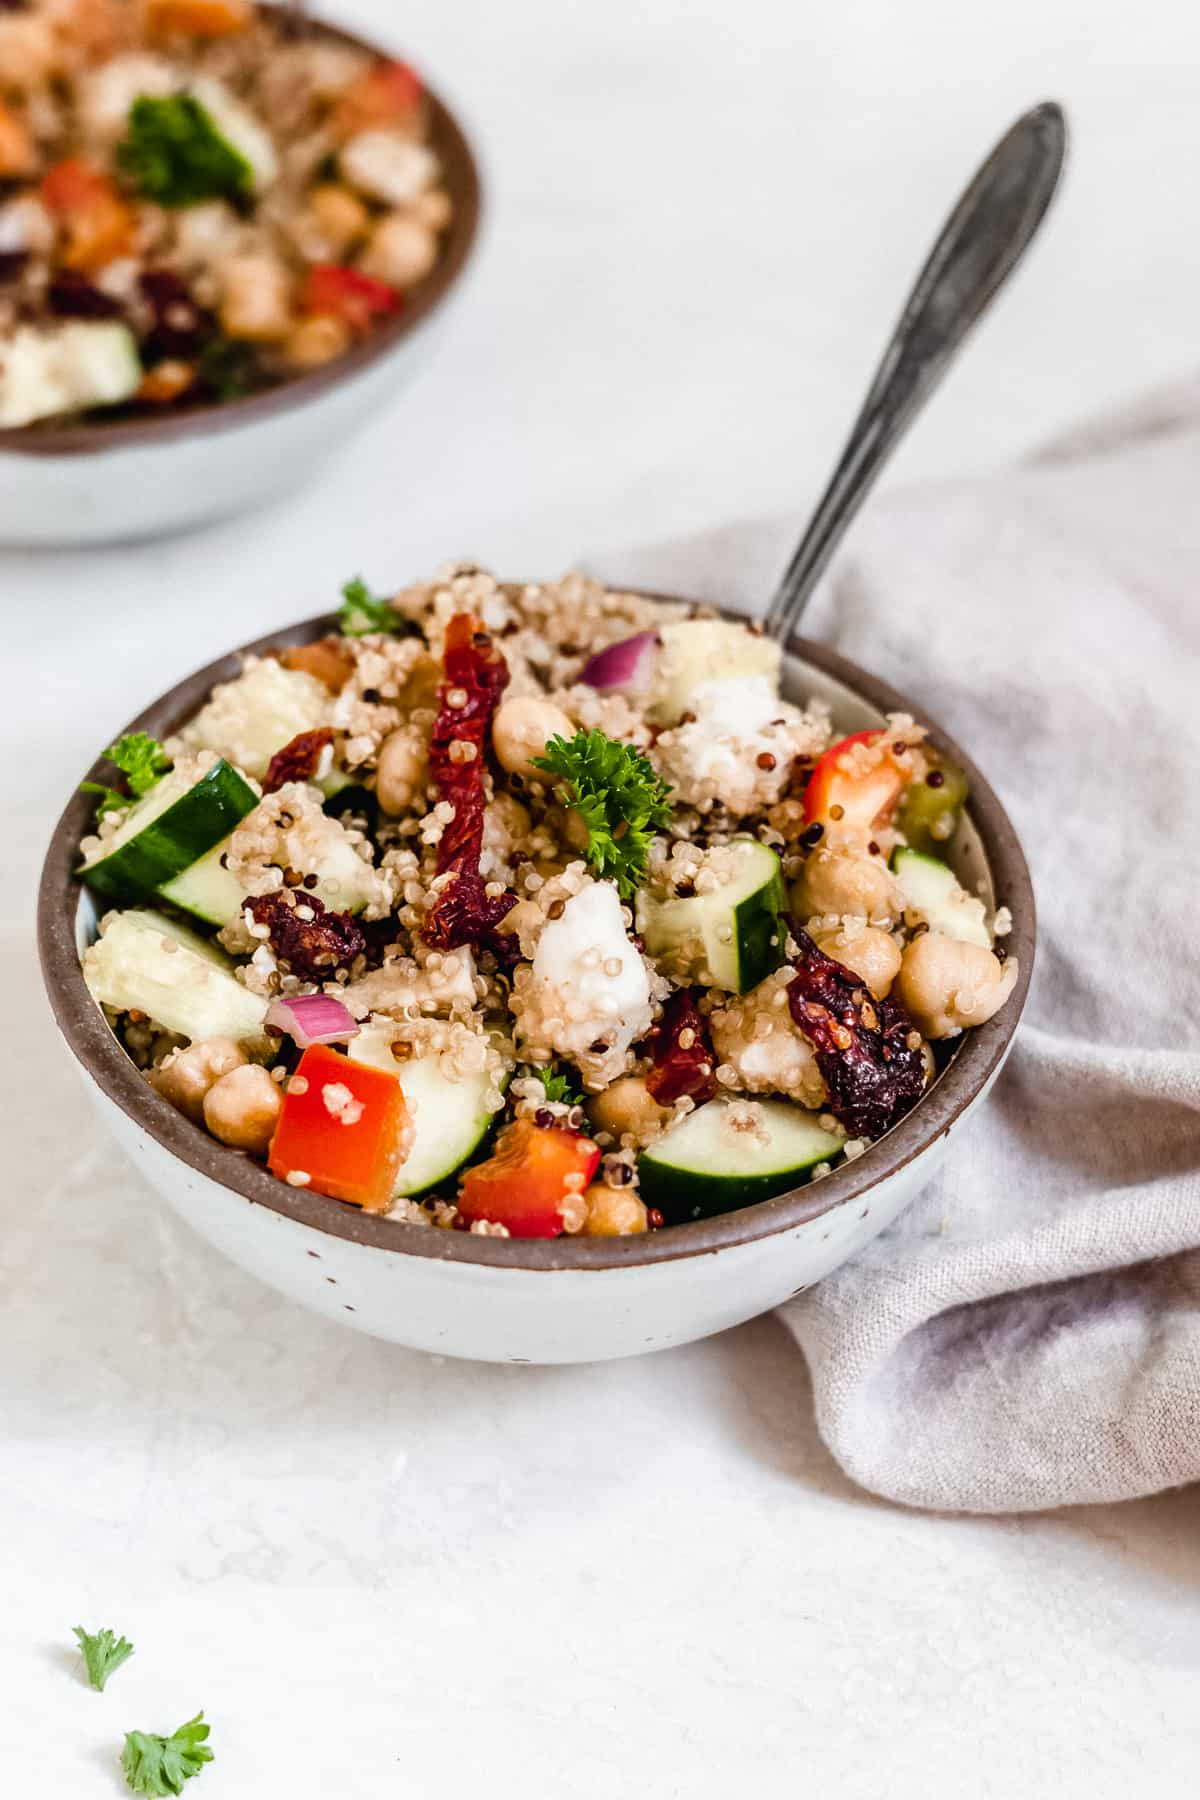 White bowl full of quinoa salad with cucumbers and red peppers on a white surface.